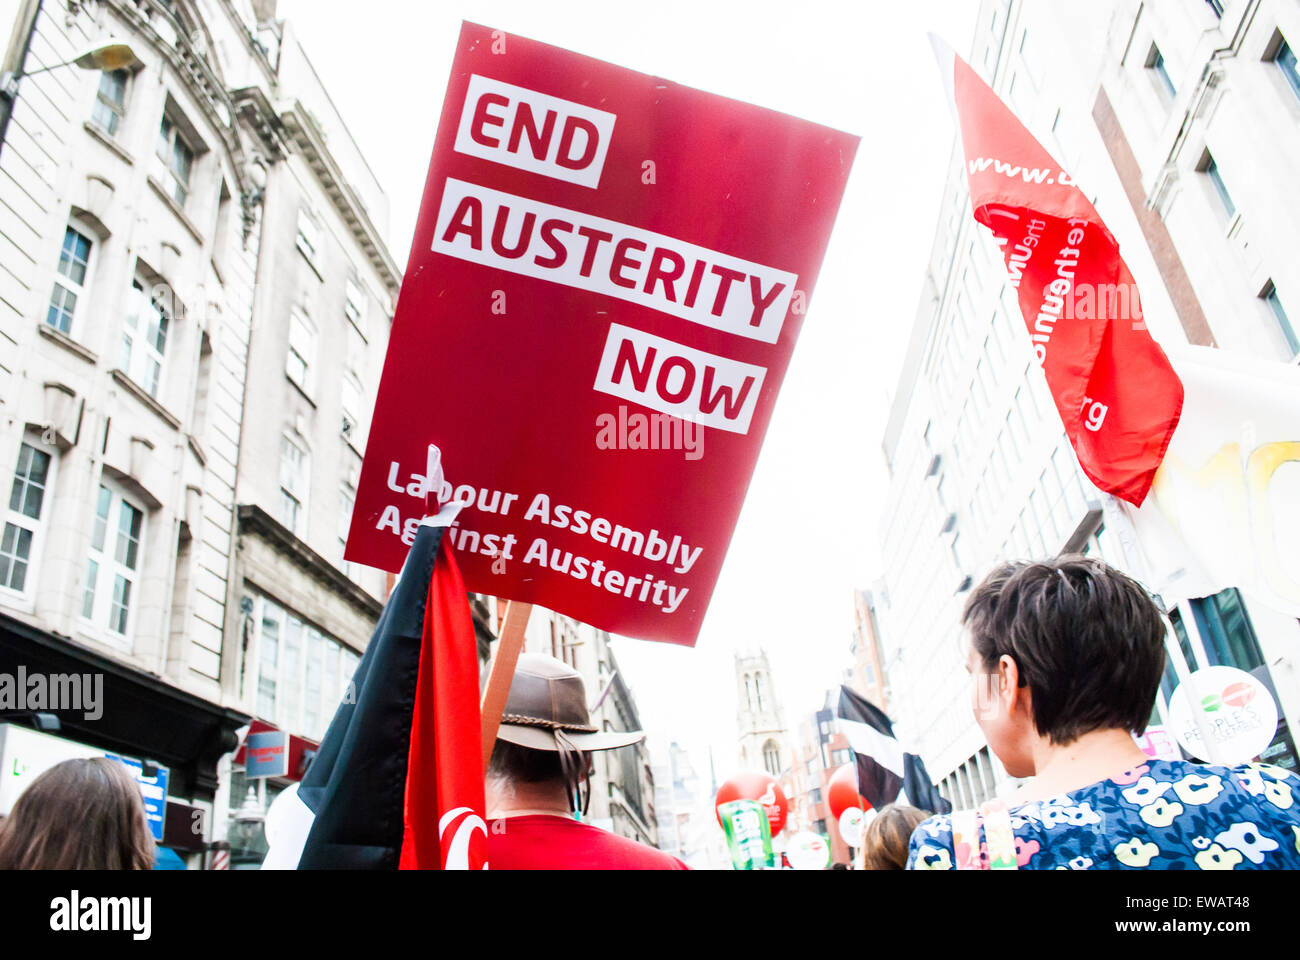 A  protest sign at the Anti Austerity march in London United kingdom 2015 - Stock Image